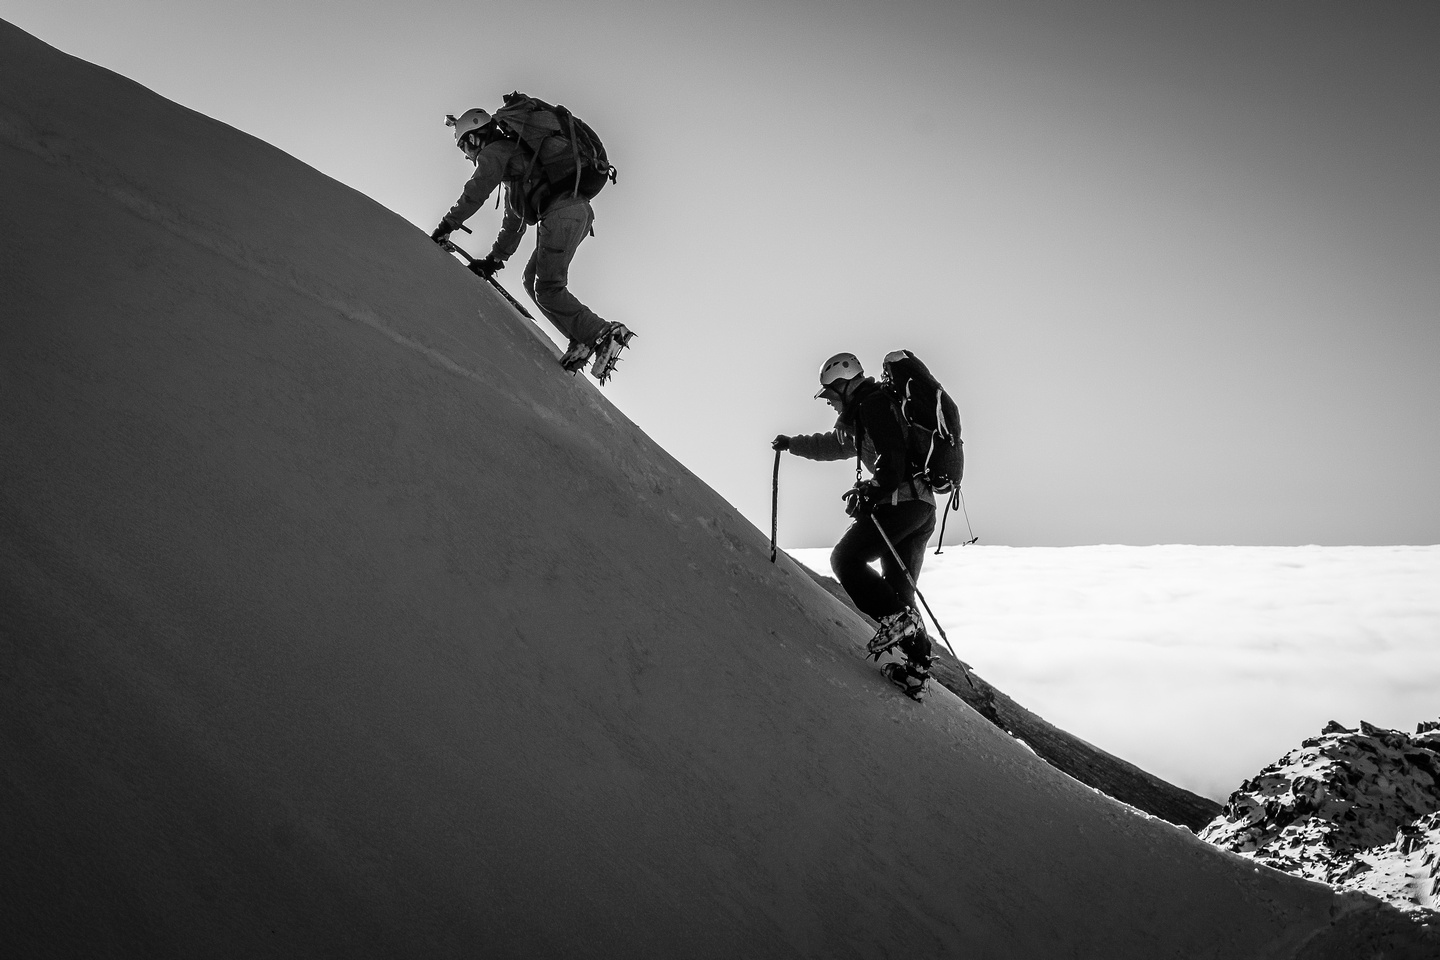 Ben and Steven climb up a short, icy slope to another arete.